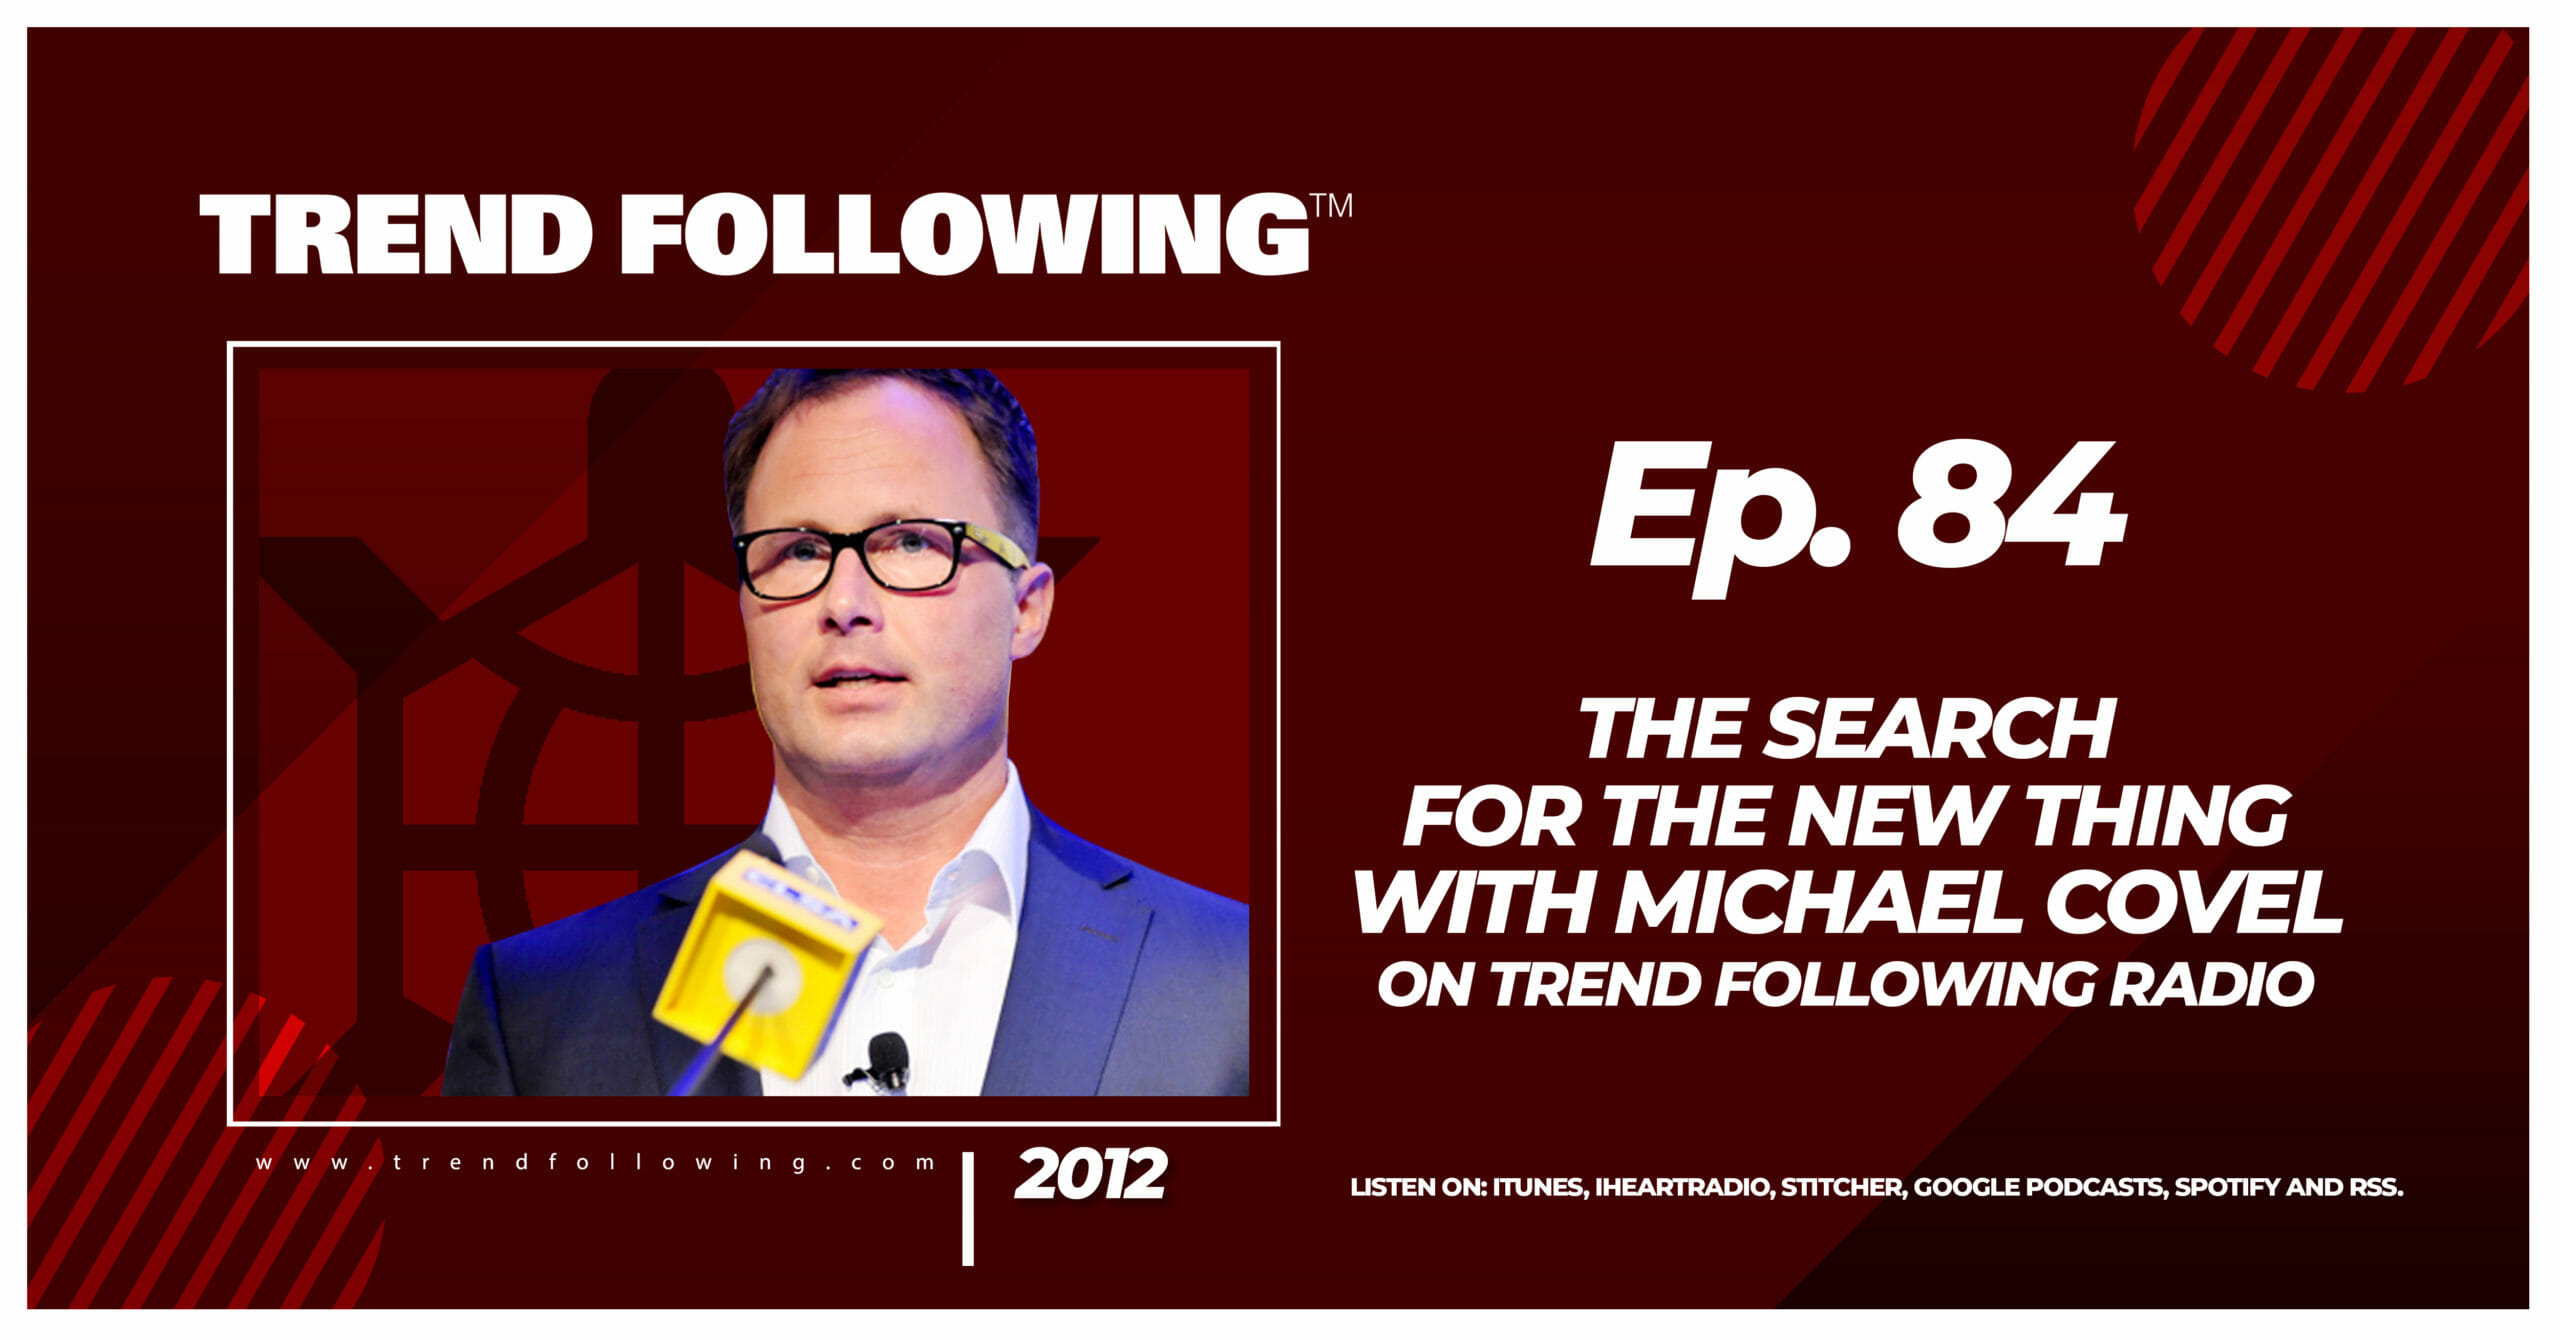 The Search for the New New Thing with Michael Covel on Trend Following Radio